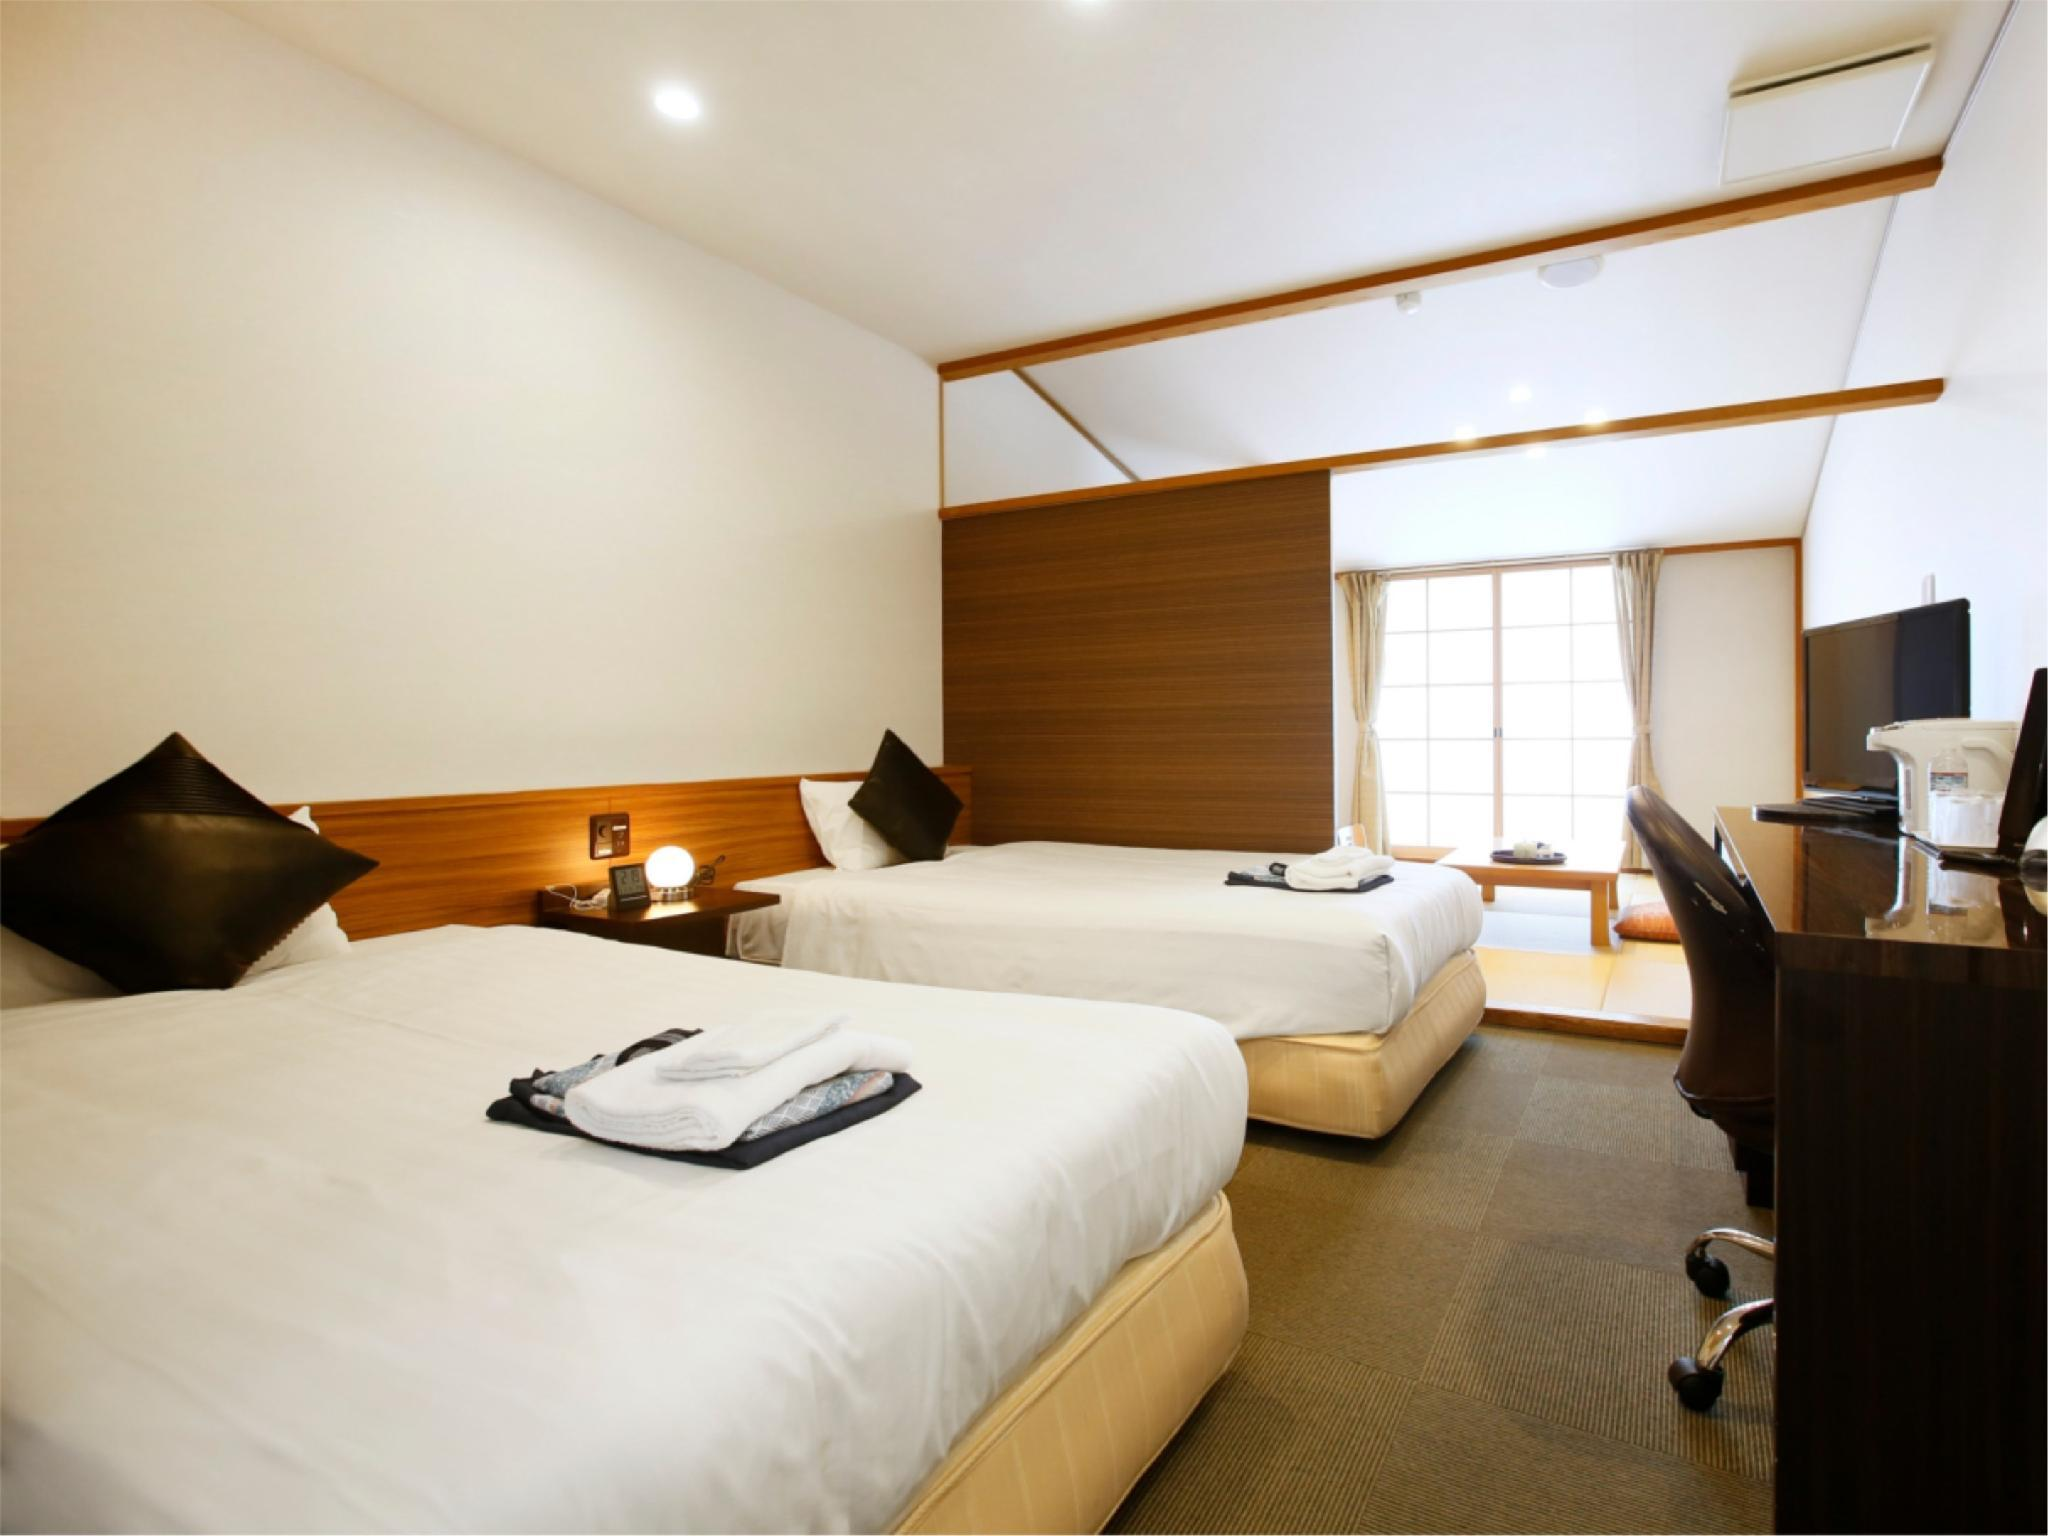 潮館 和洋式房(2張床) (Japanese/Western-style Room (2 Beds, Ushio-kan Wing) *Has shower, no bath in room)